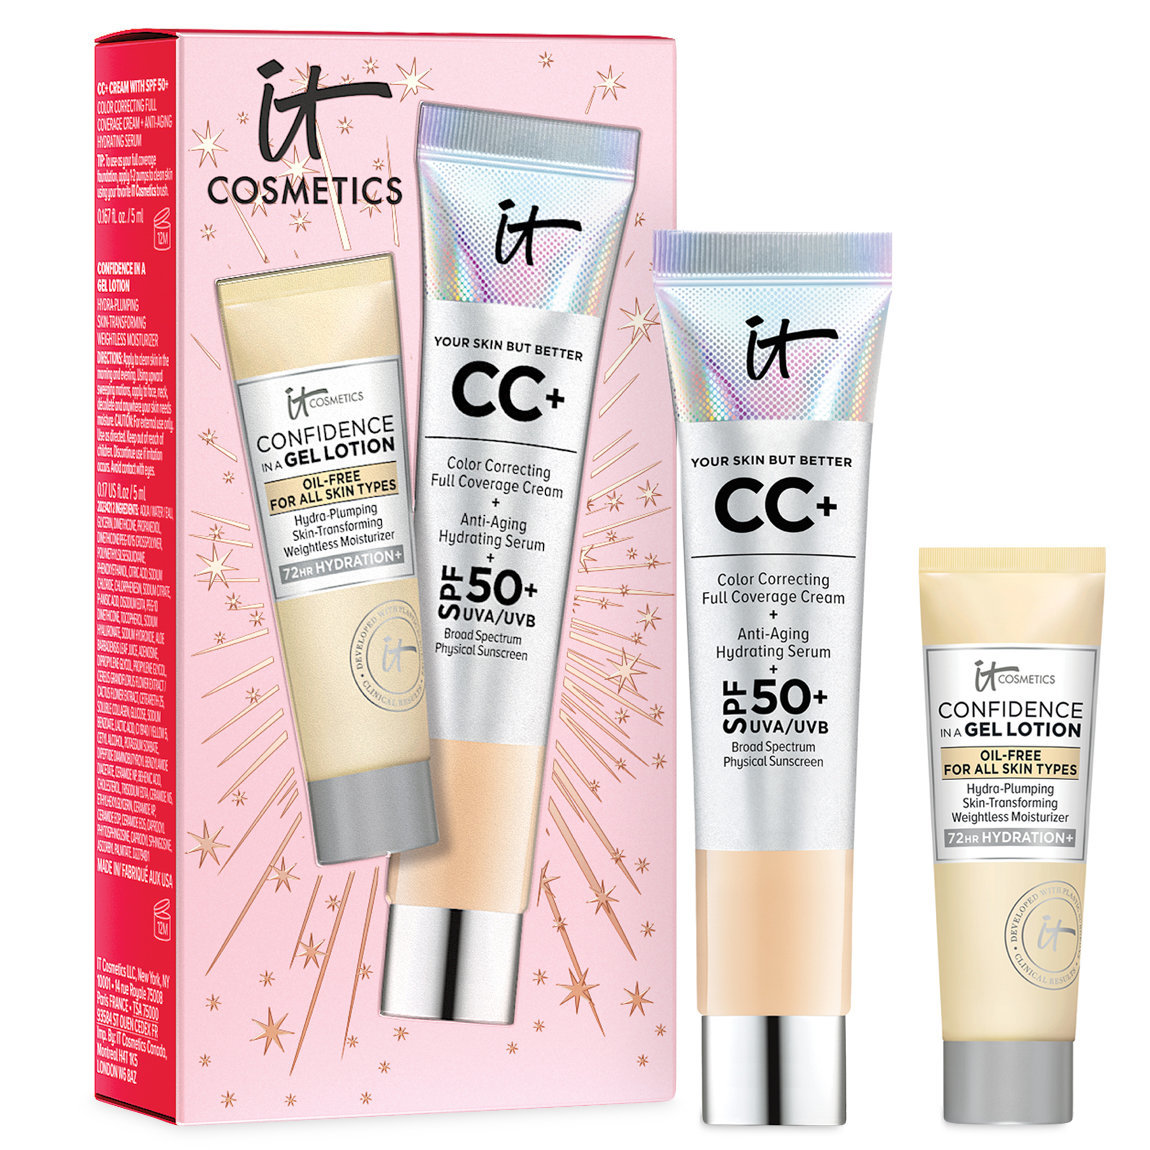 IT Cosmetics  Celebrate Confidence in Your Complexion CC+ Cream Set Light alternative view 1 - product swatch.